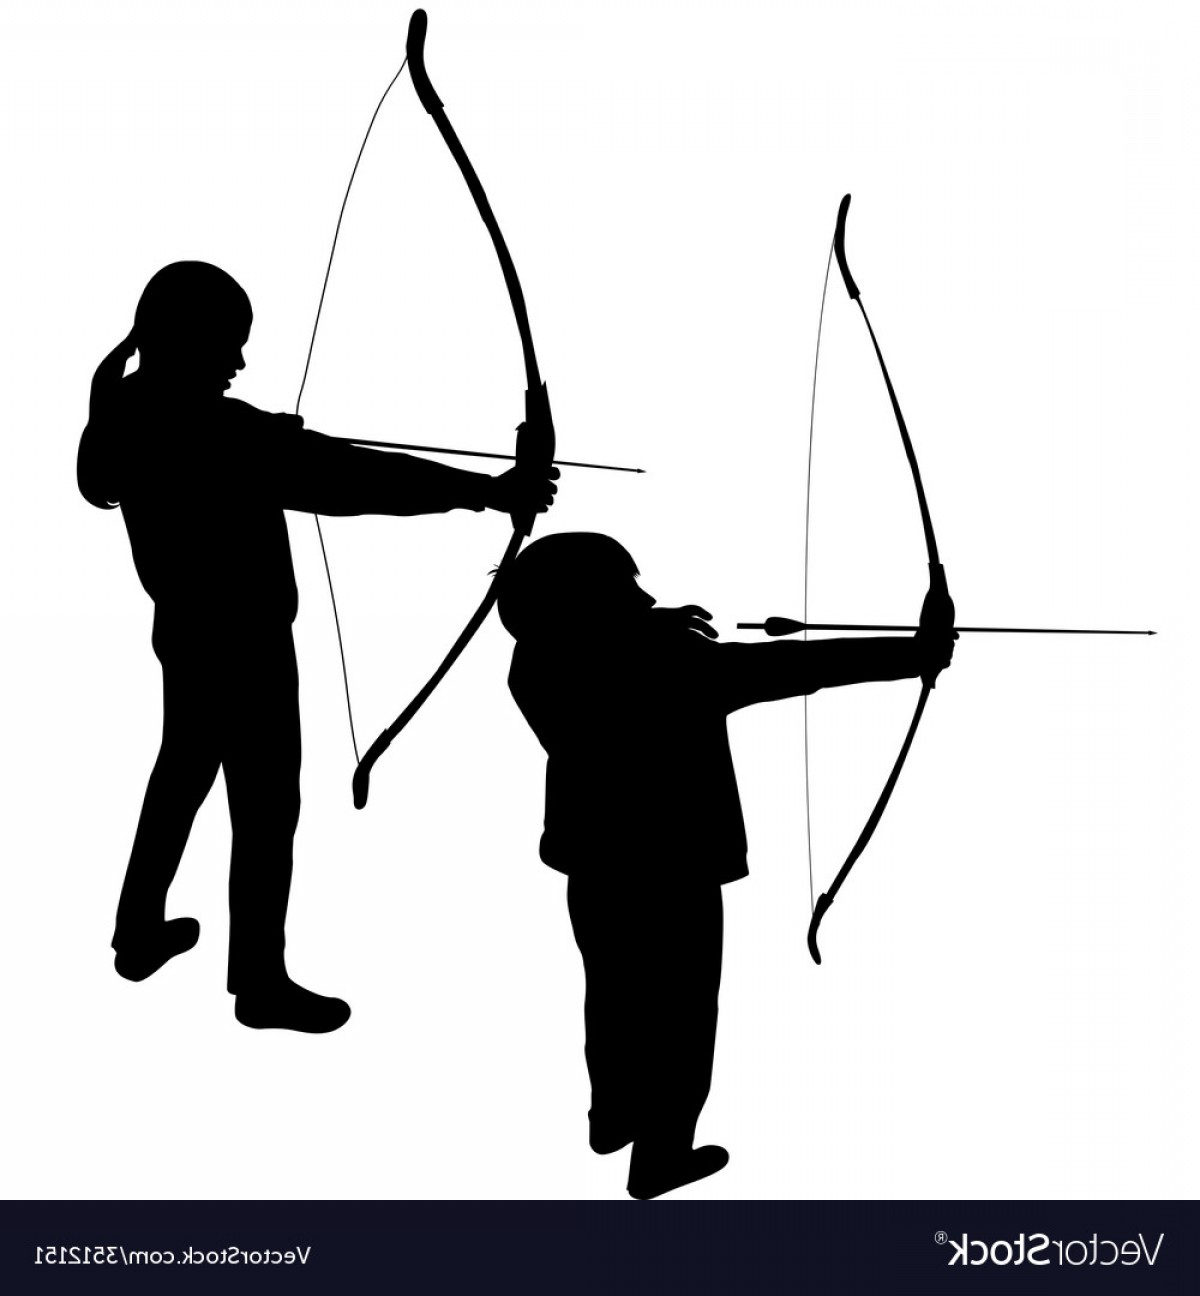 Vector Archery Silhouette: Children Silhouettes Playing Archery Vector